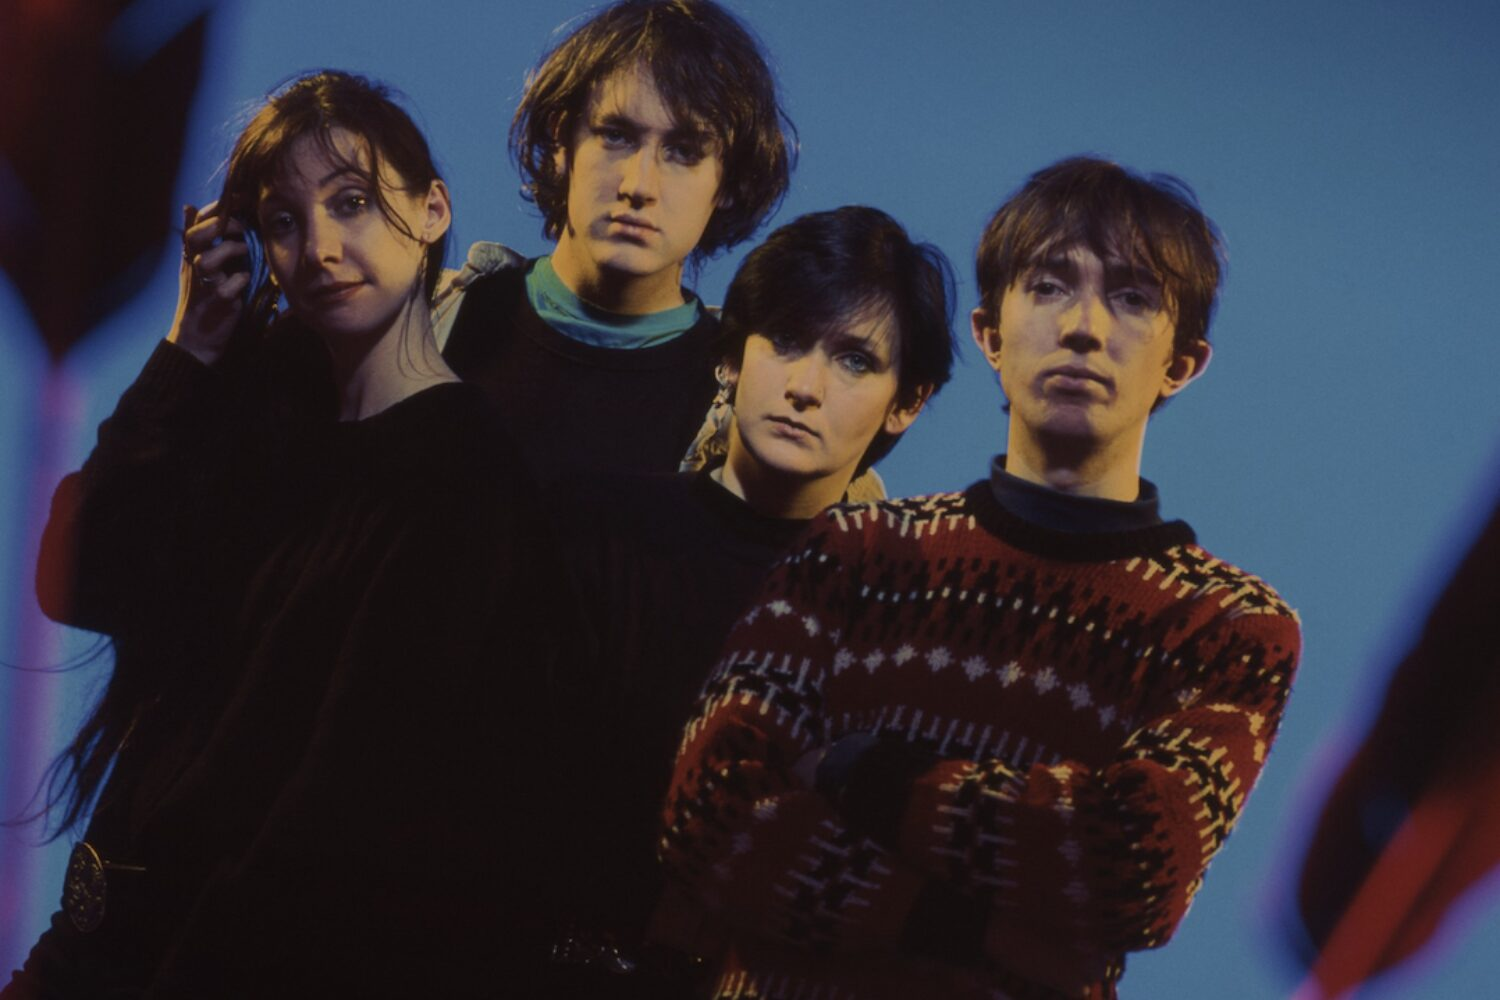 My Bloody Valentine's full catalogue is now available digitally